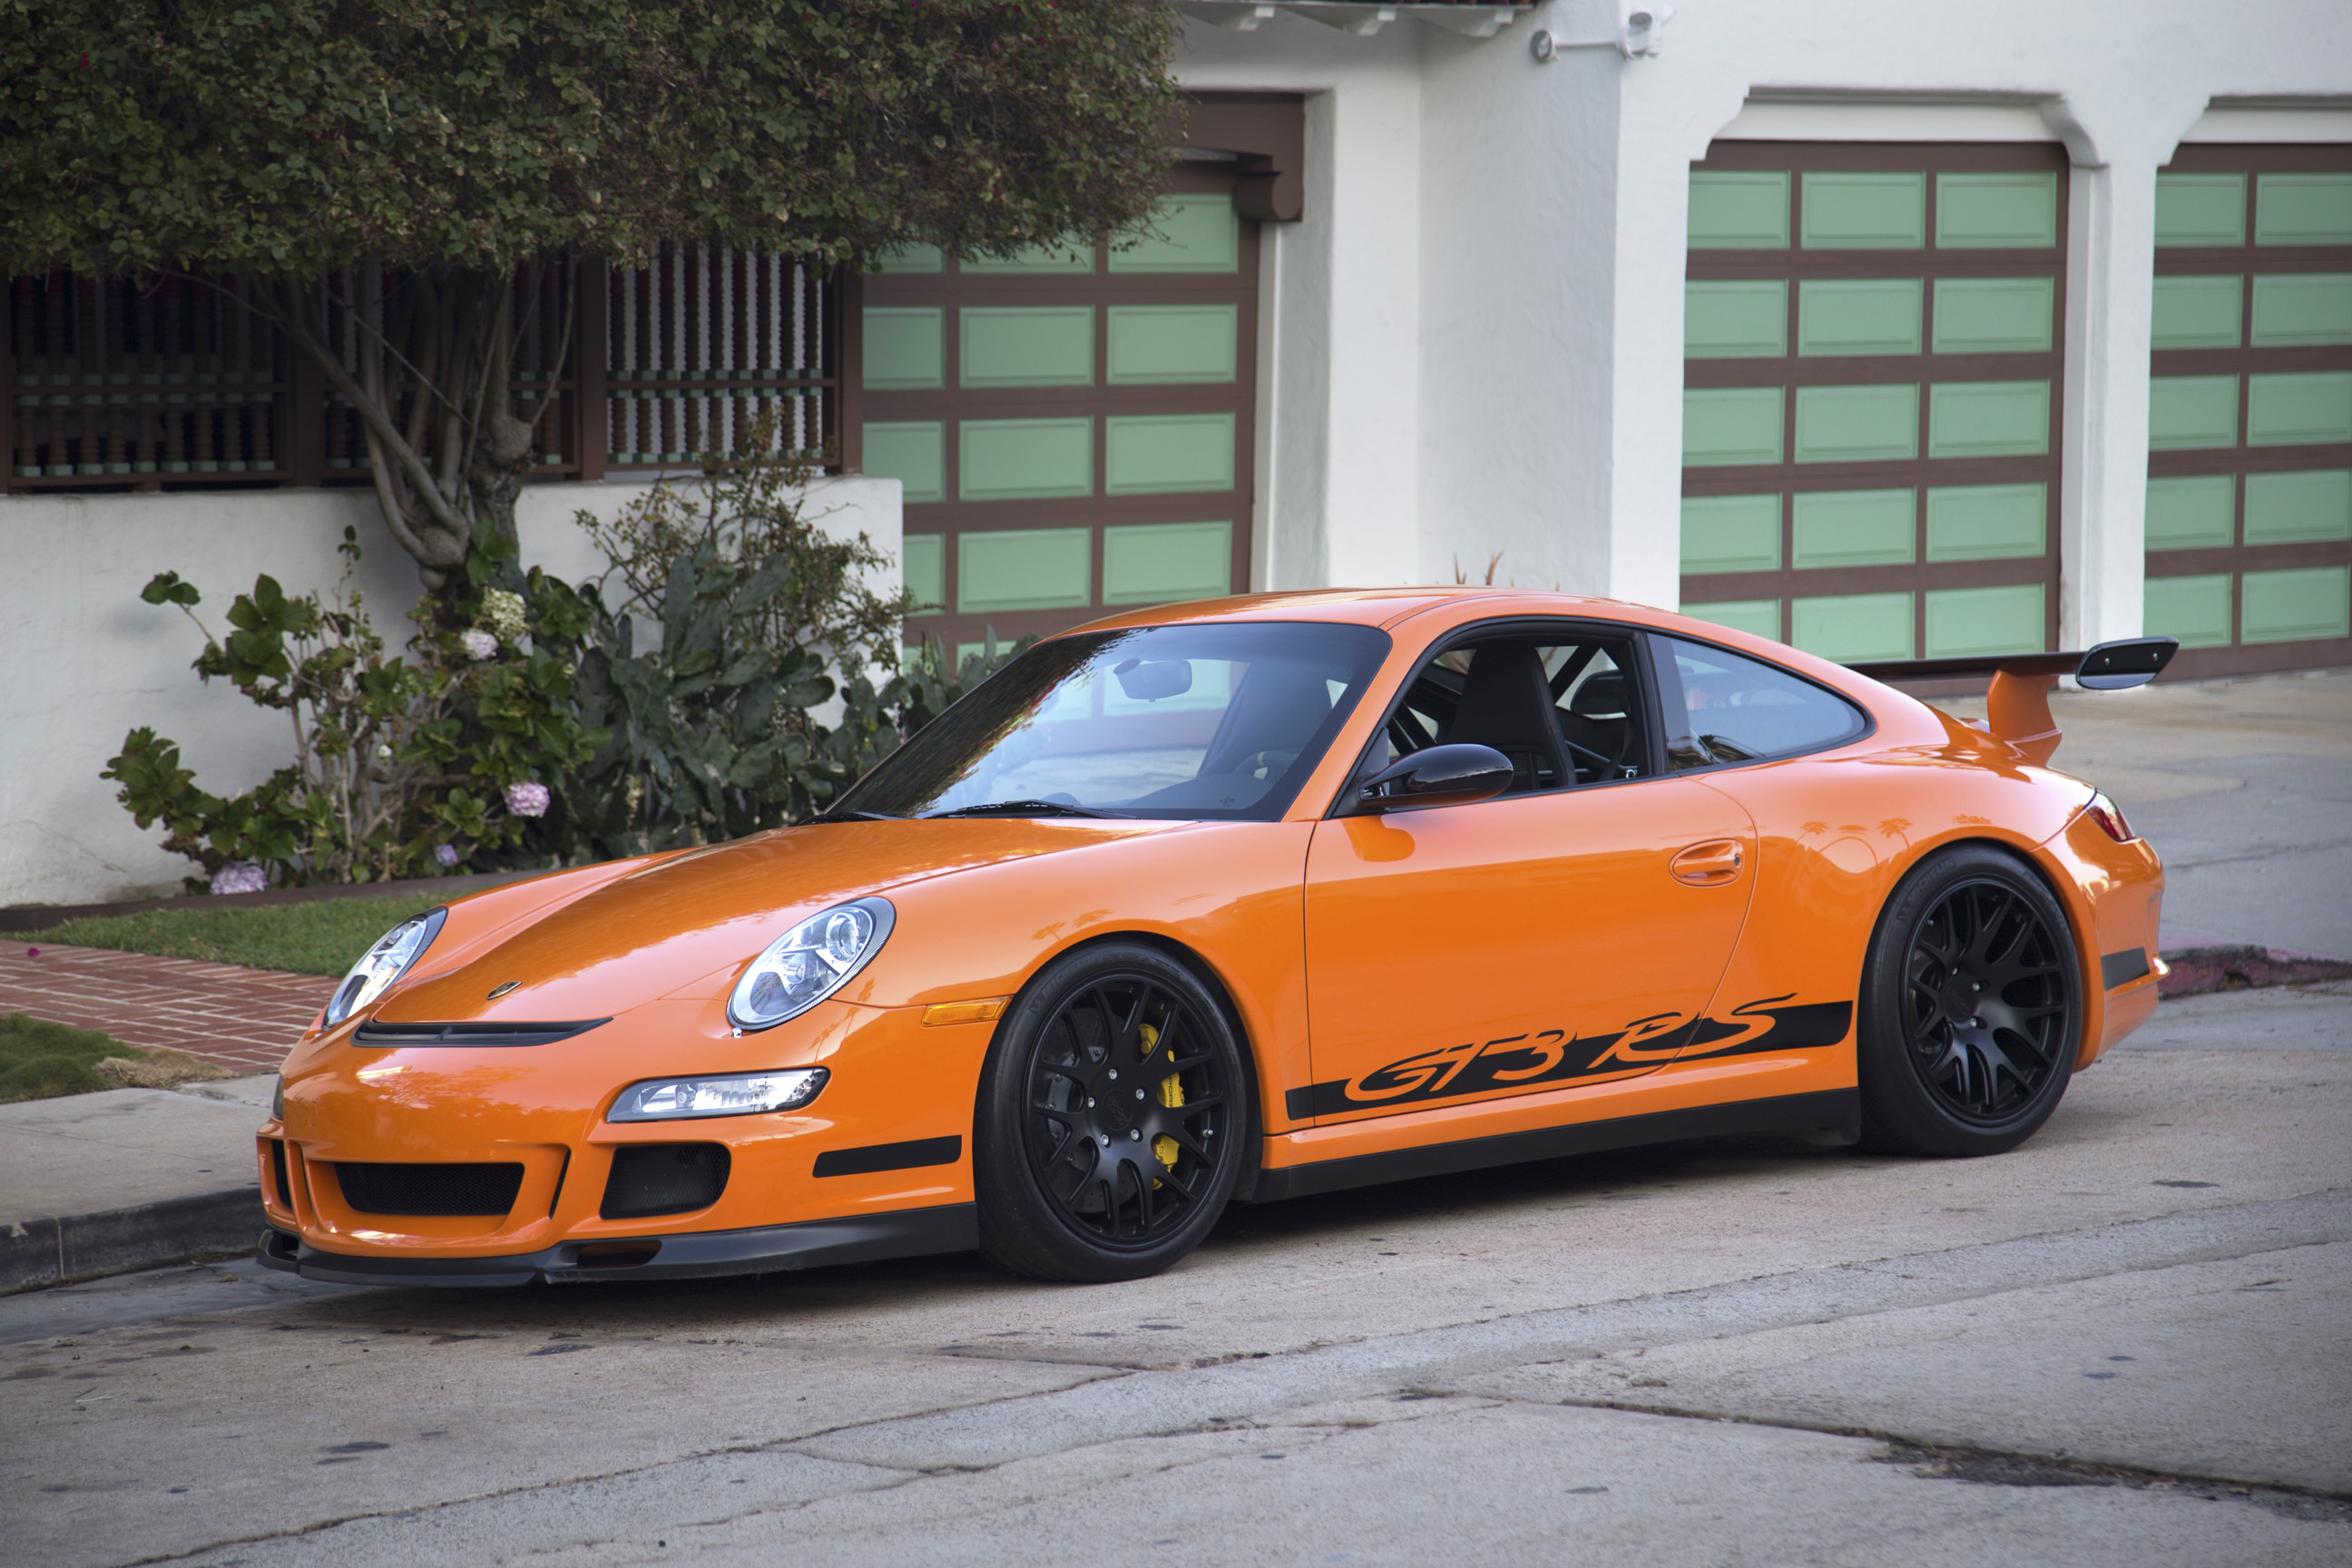 2007 Porsche 911 Gt3 Rs Sold Grand Prix Classics La